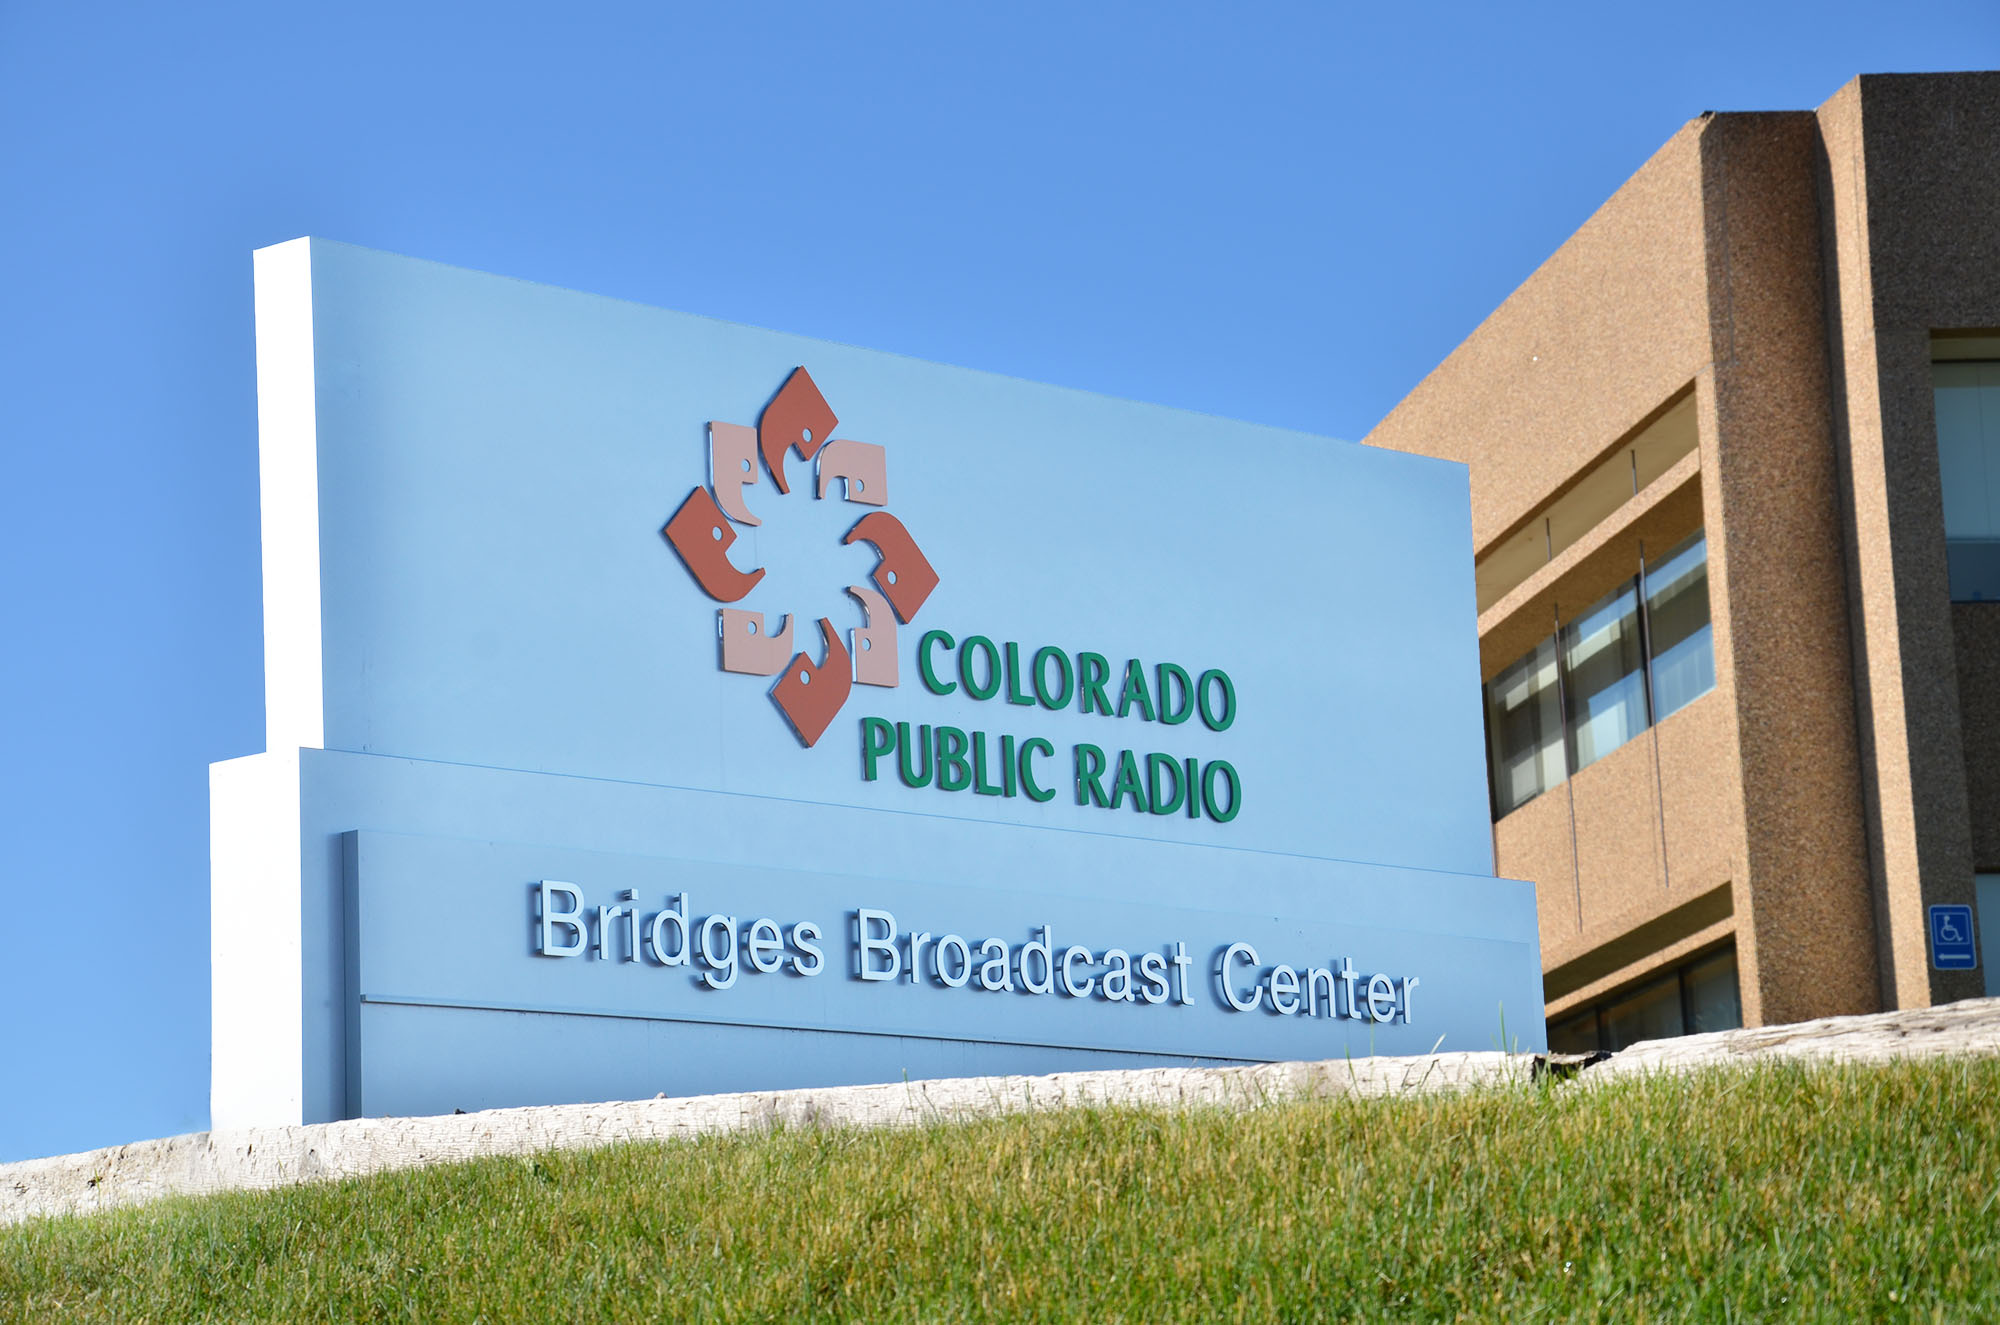 Colorado Public Radio Bridges Broadcast Center